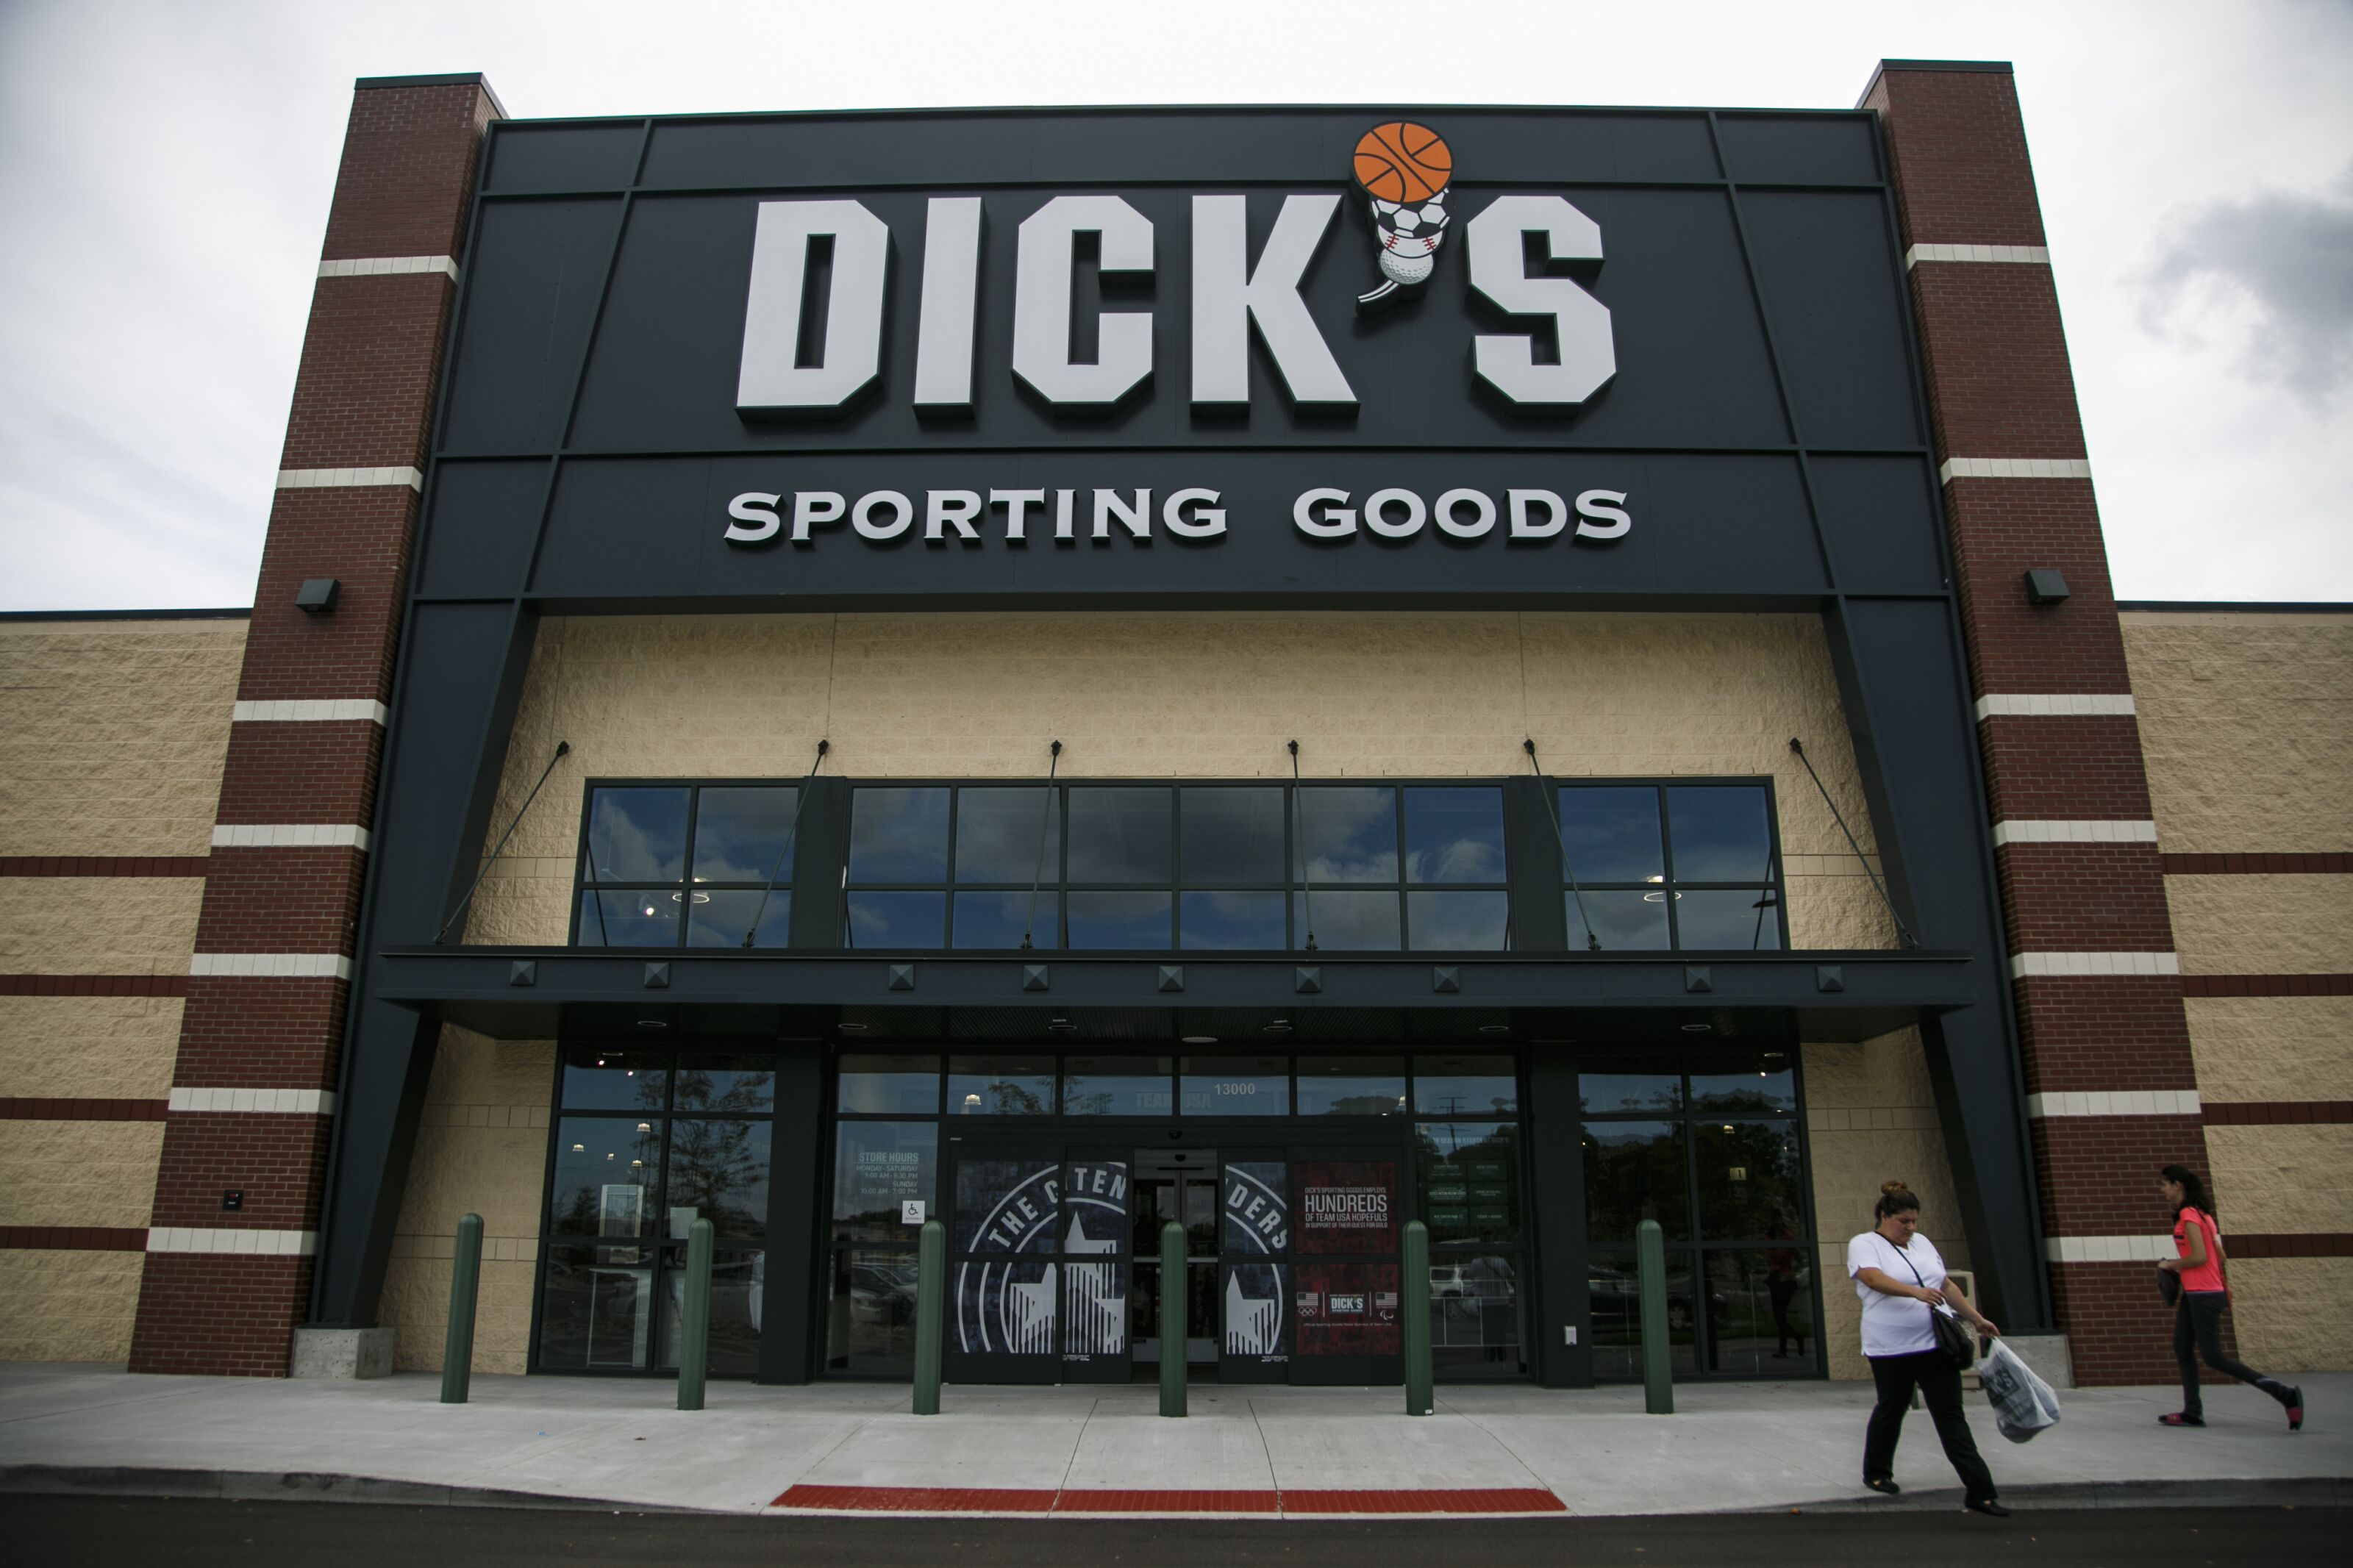 Holiday Deals & Gifts at DICK'S Shop the season's greatest savings at DICK'S Sporting Goods. Save up to 50% on select products with holiday deals on apparel, footwear and gear for every fan and athlete on your list.